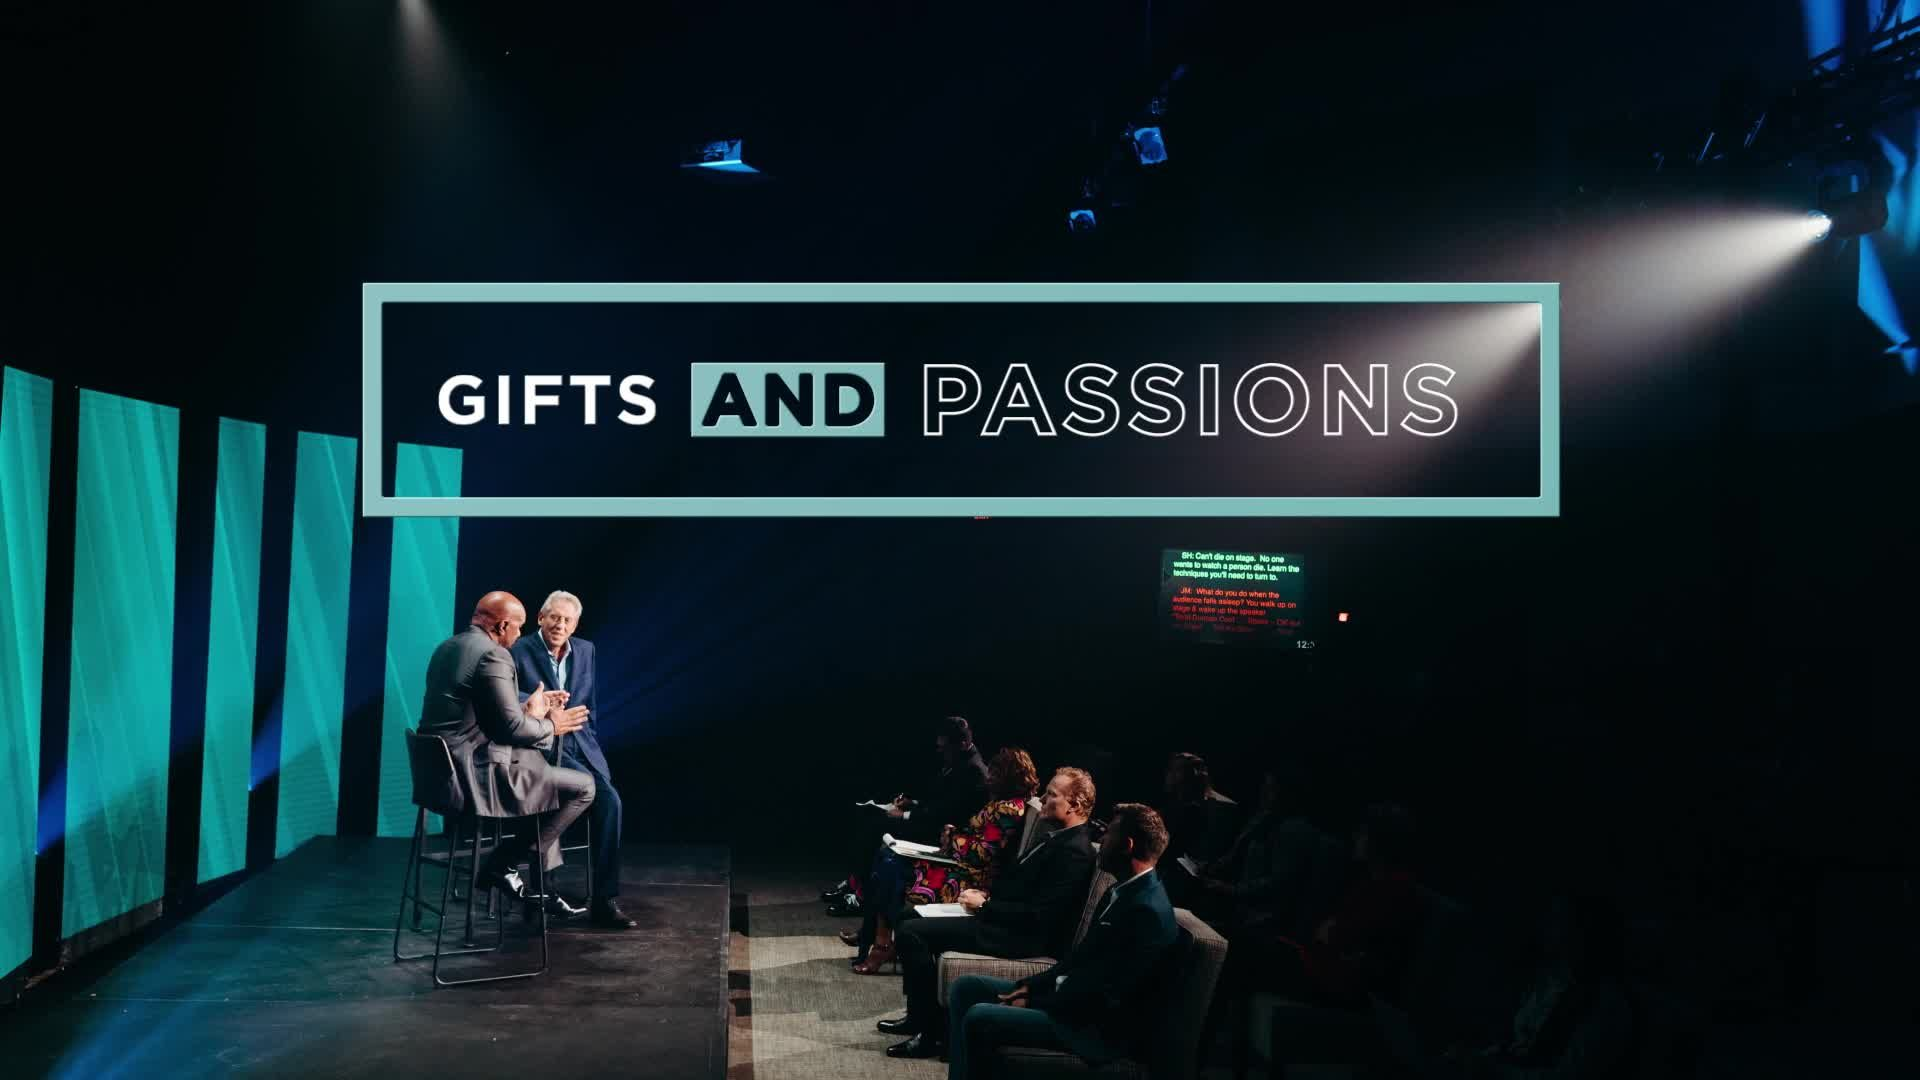 Gifts and Passions